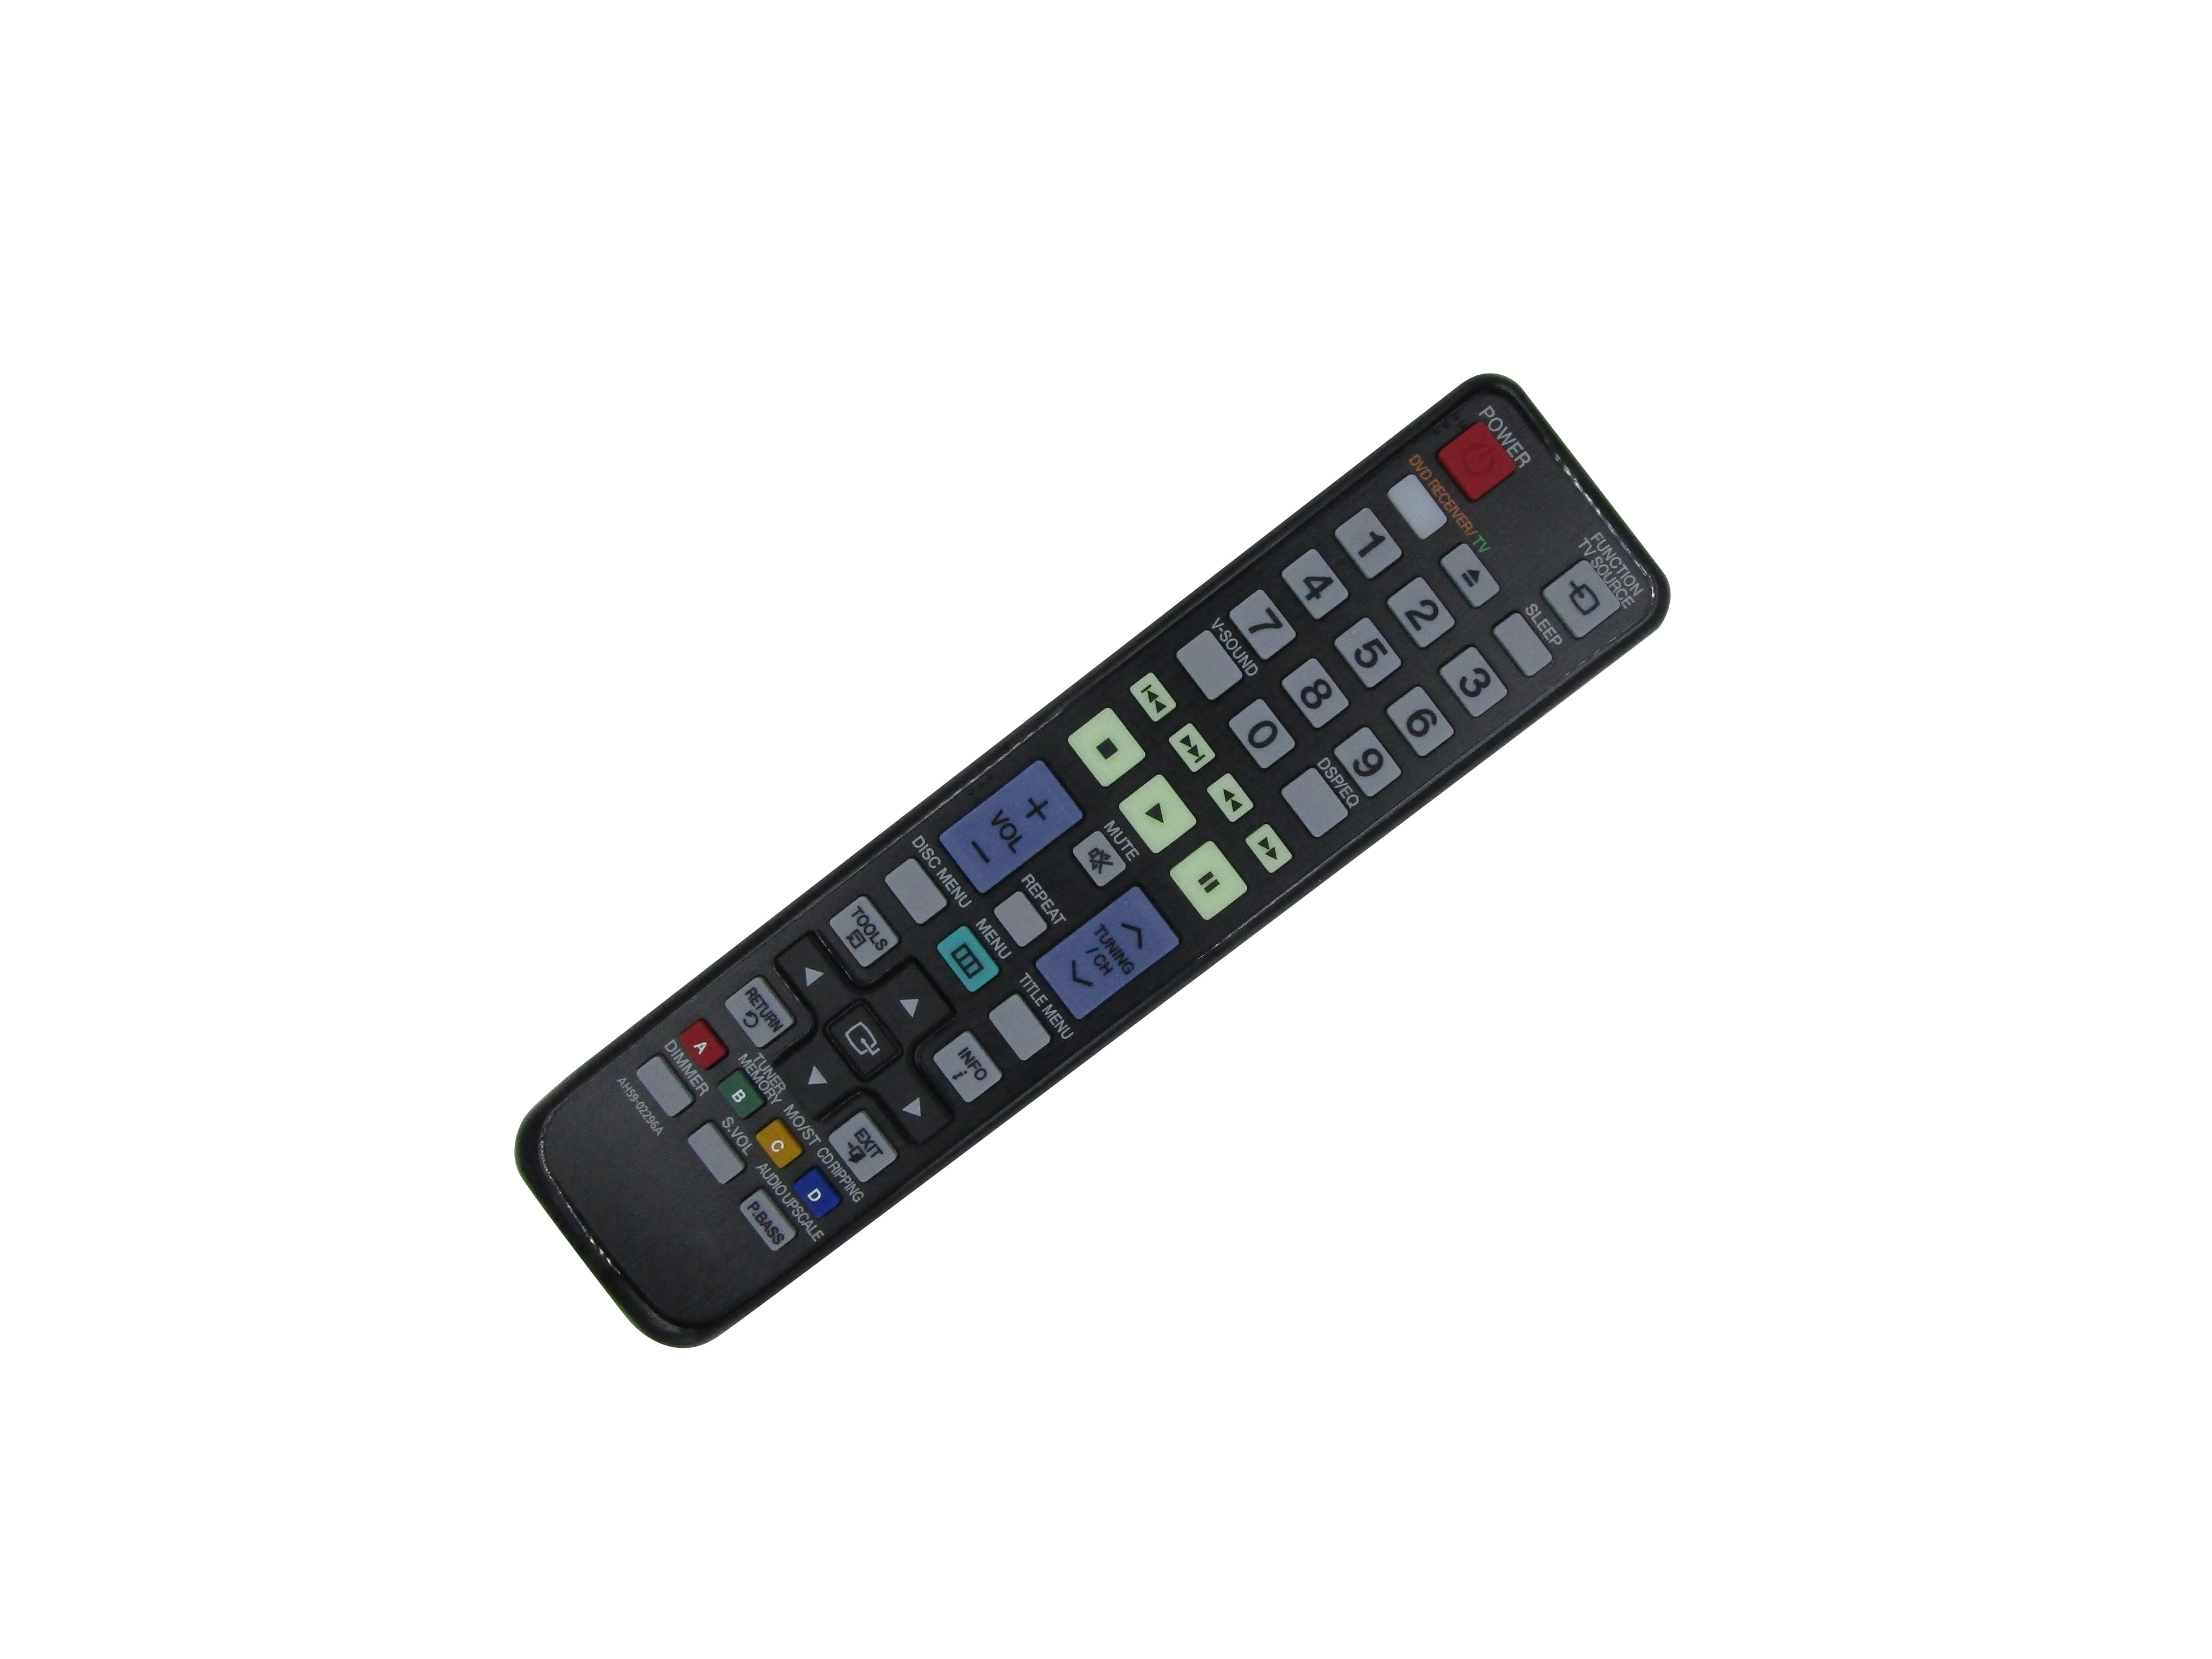 Replaced Remote Control For Samsung HT-C6950W HT-C7530W HT-C7550W HT-C6530 HT-C6730W HT-C6900W DVD H